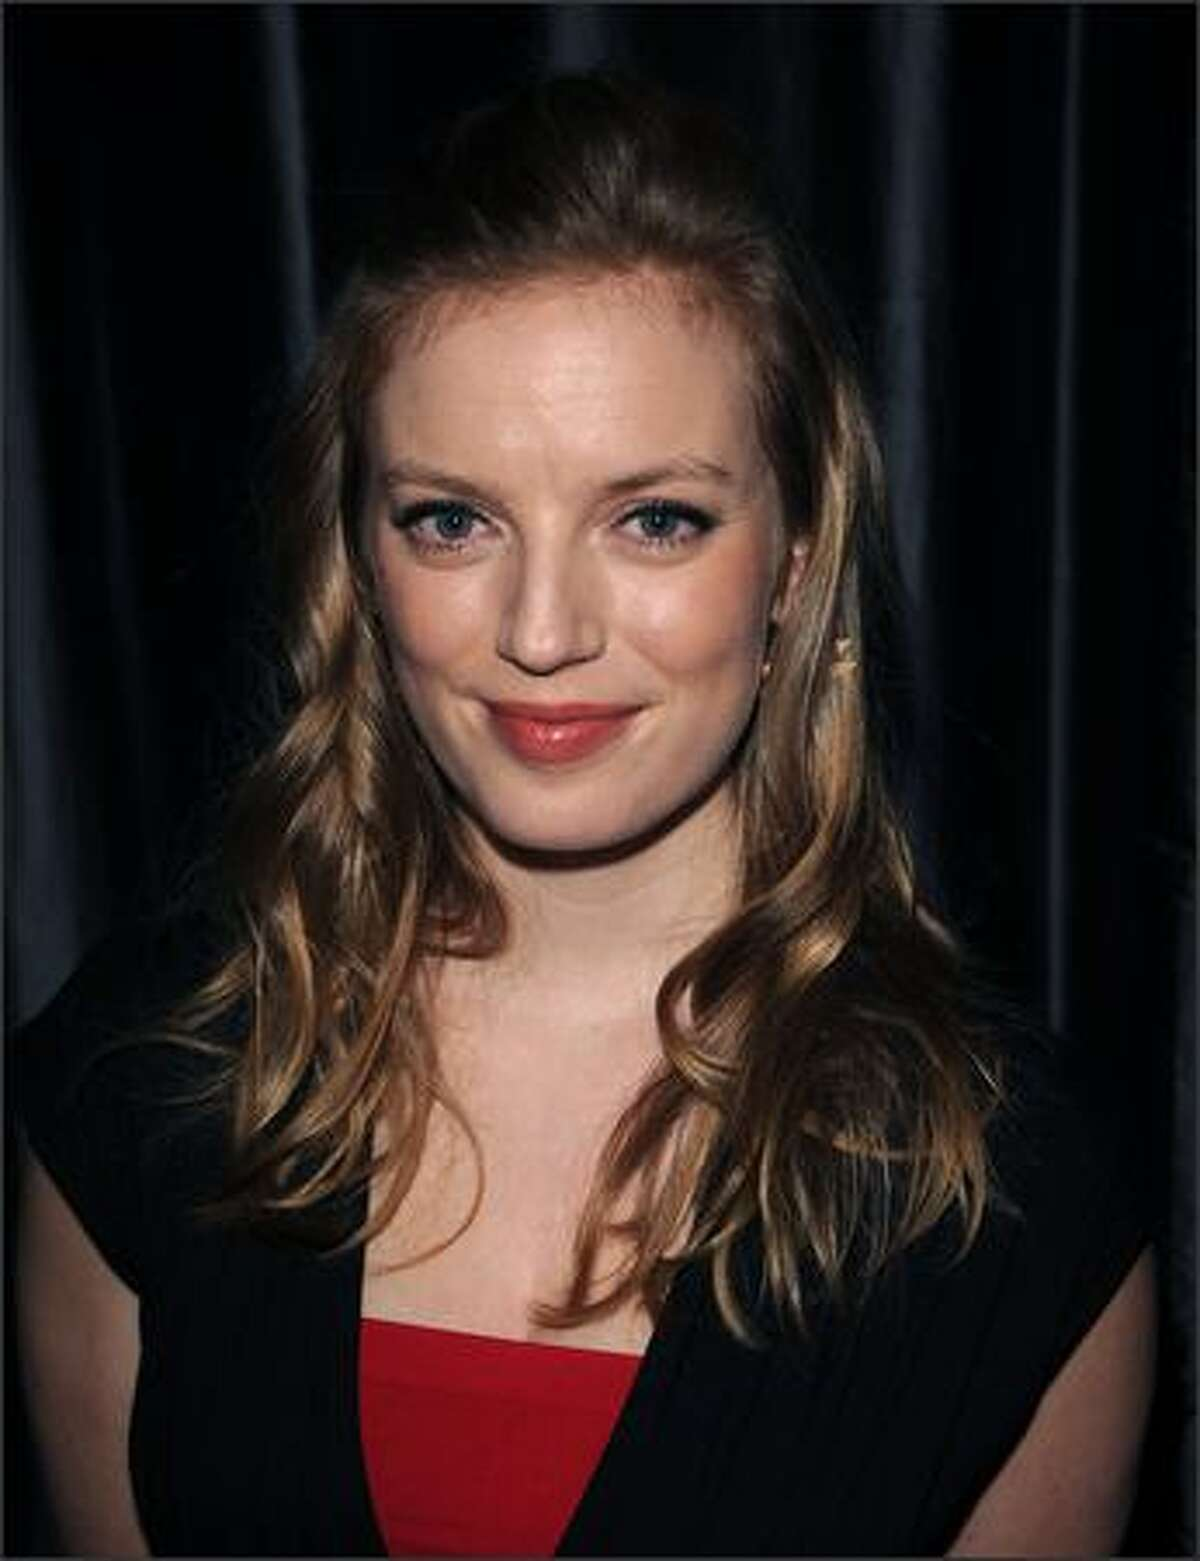 Actress Sarah Polley arrives at the 2007 New York Film Critic's Circle Awards at Spotlight in Times Square, Sunday, in New York. (AP Photo/Peter Kramer)